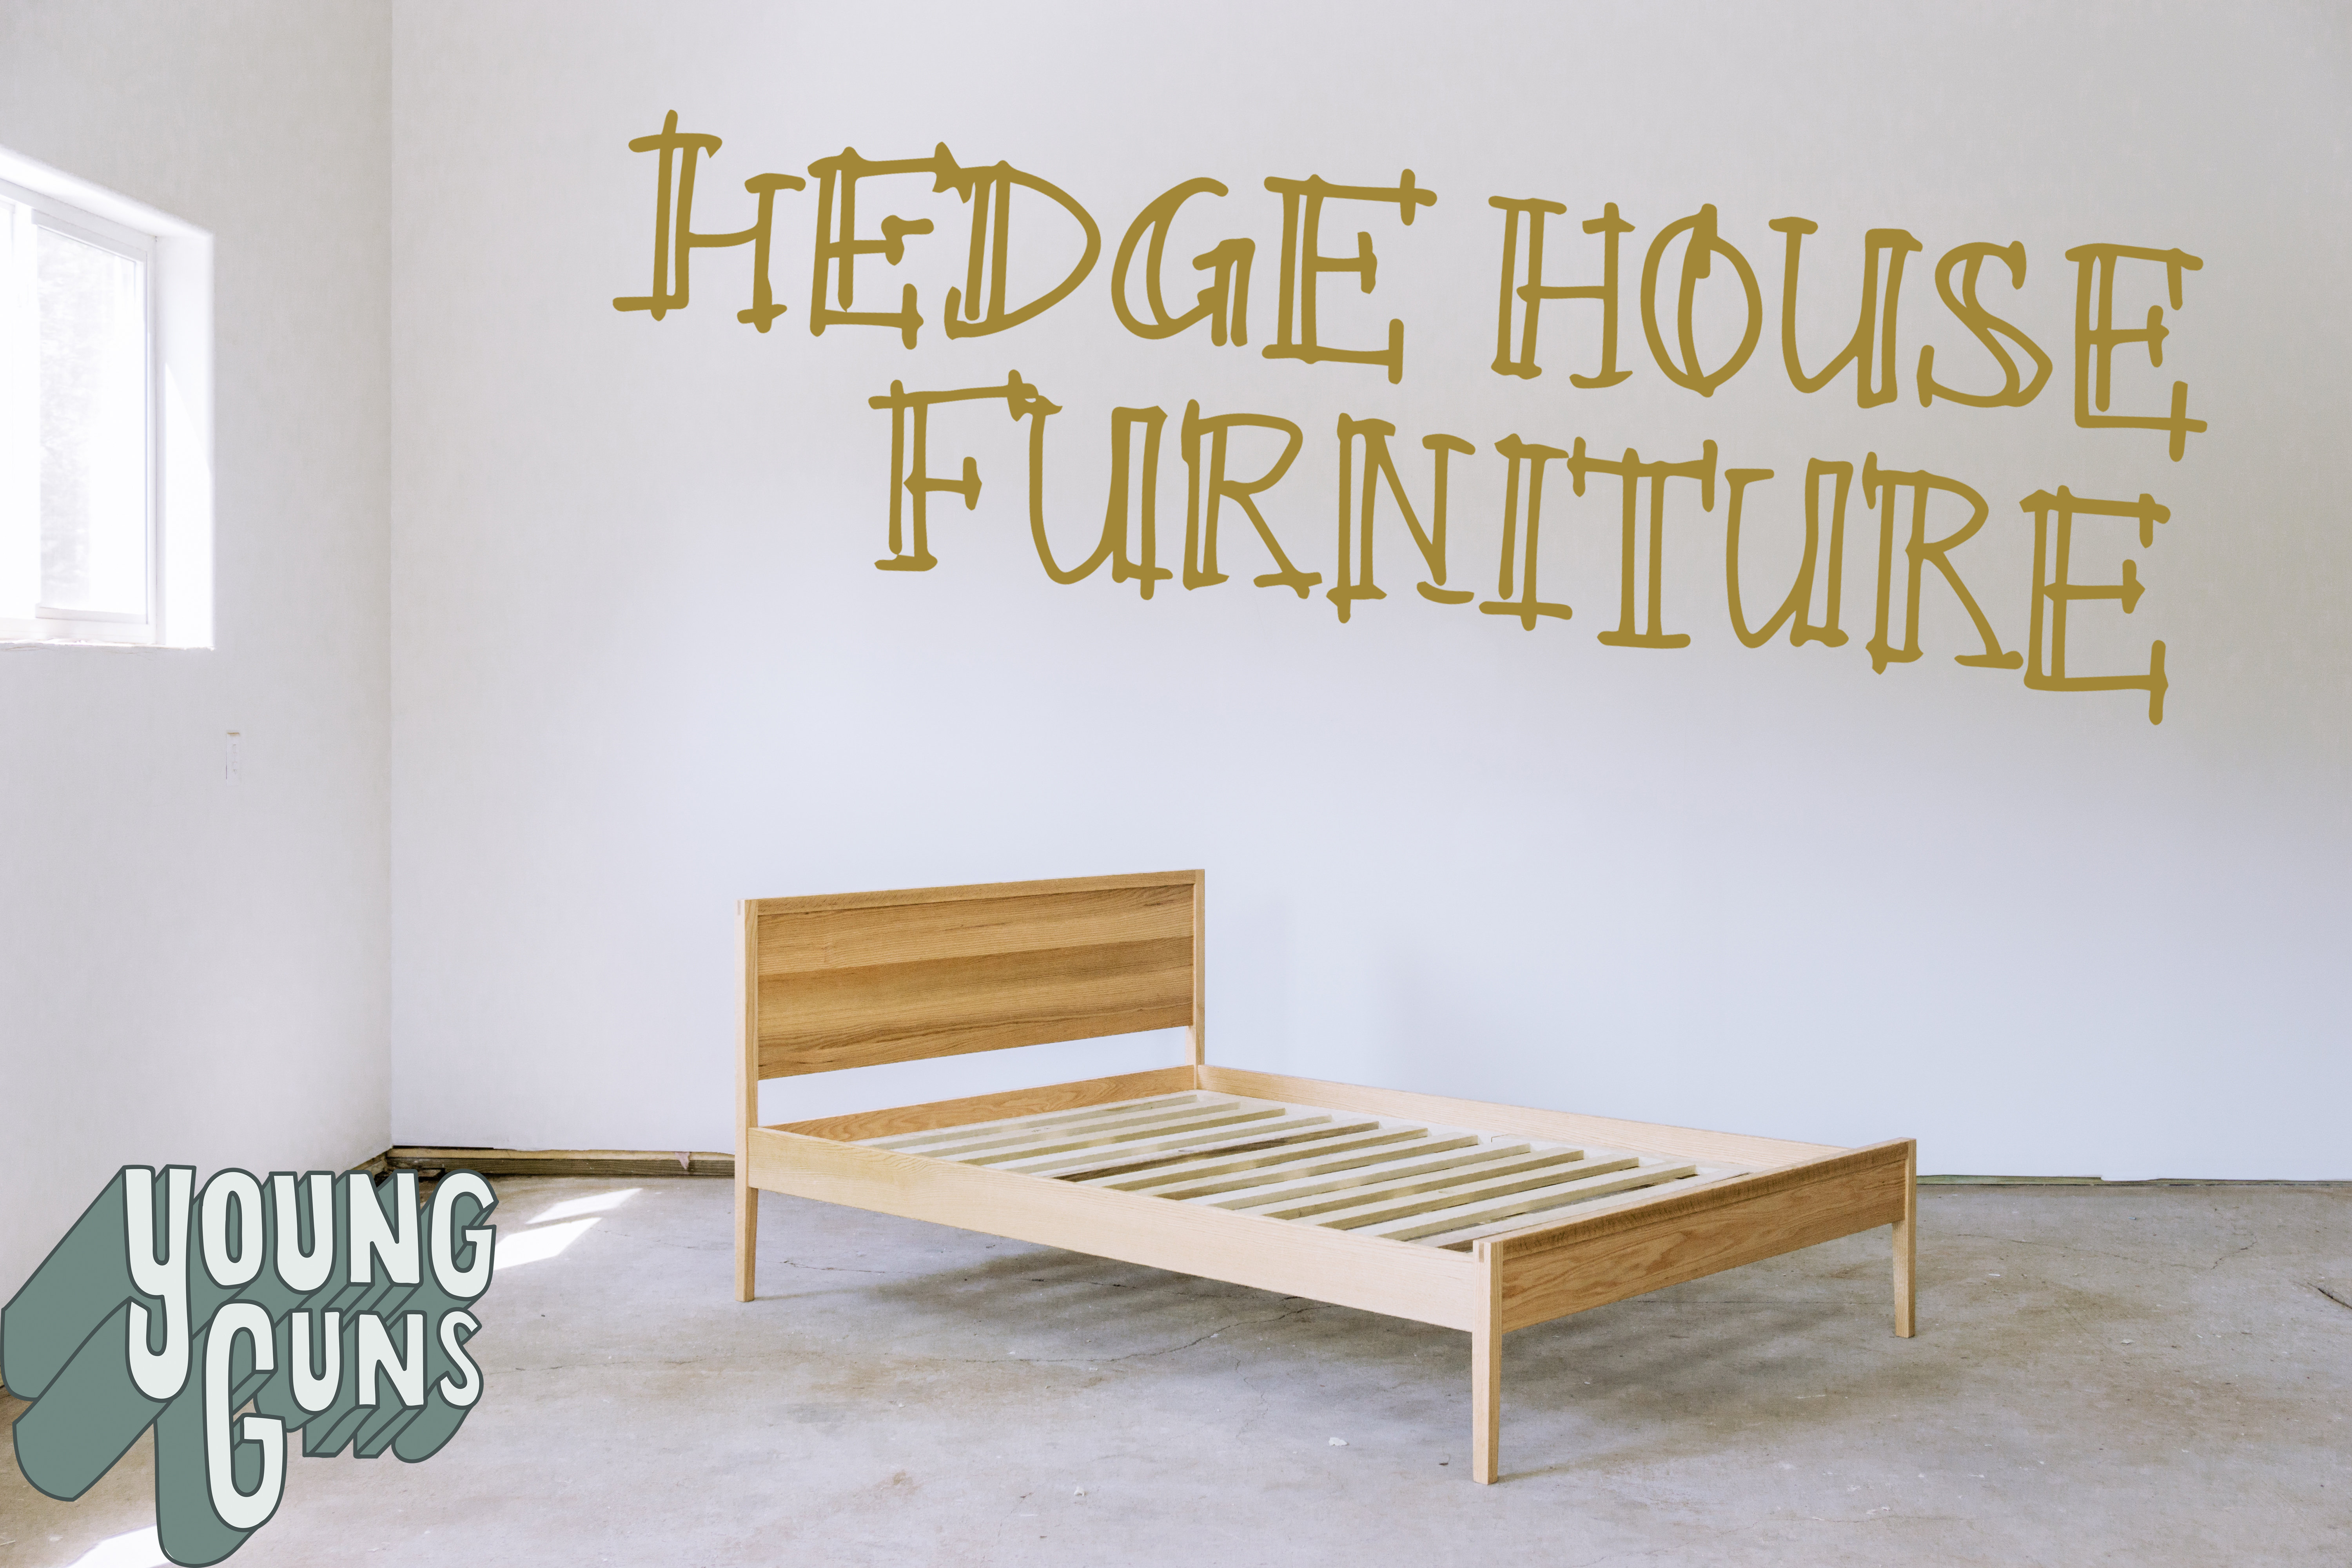 Hedge House Furniture: Modern Pieces Made In Amish Country   Curbed